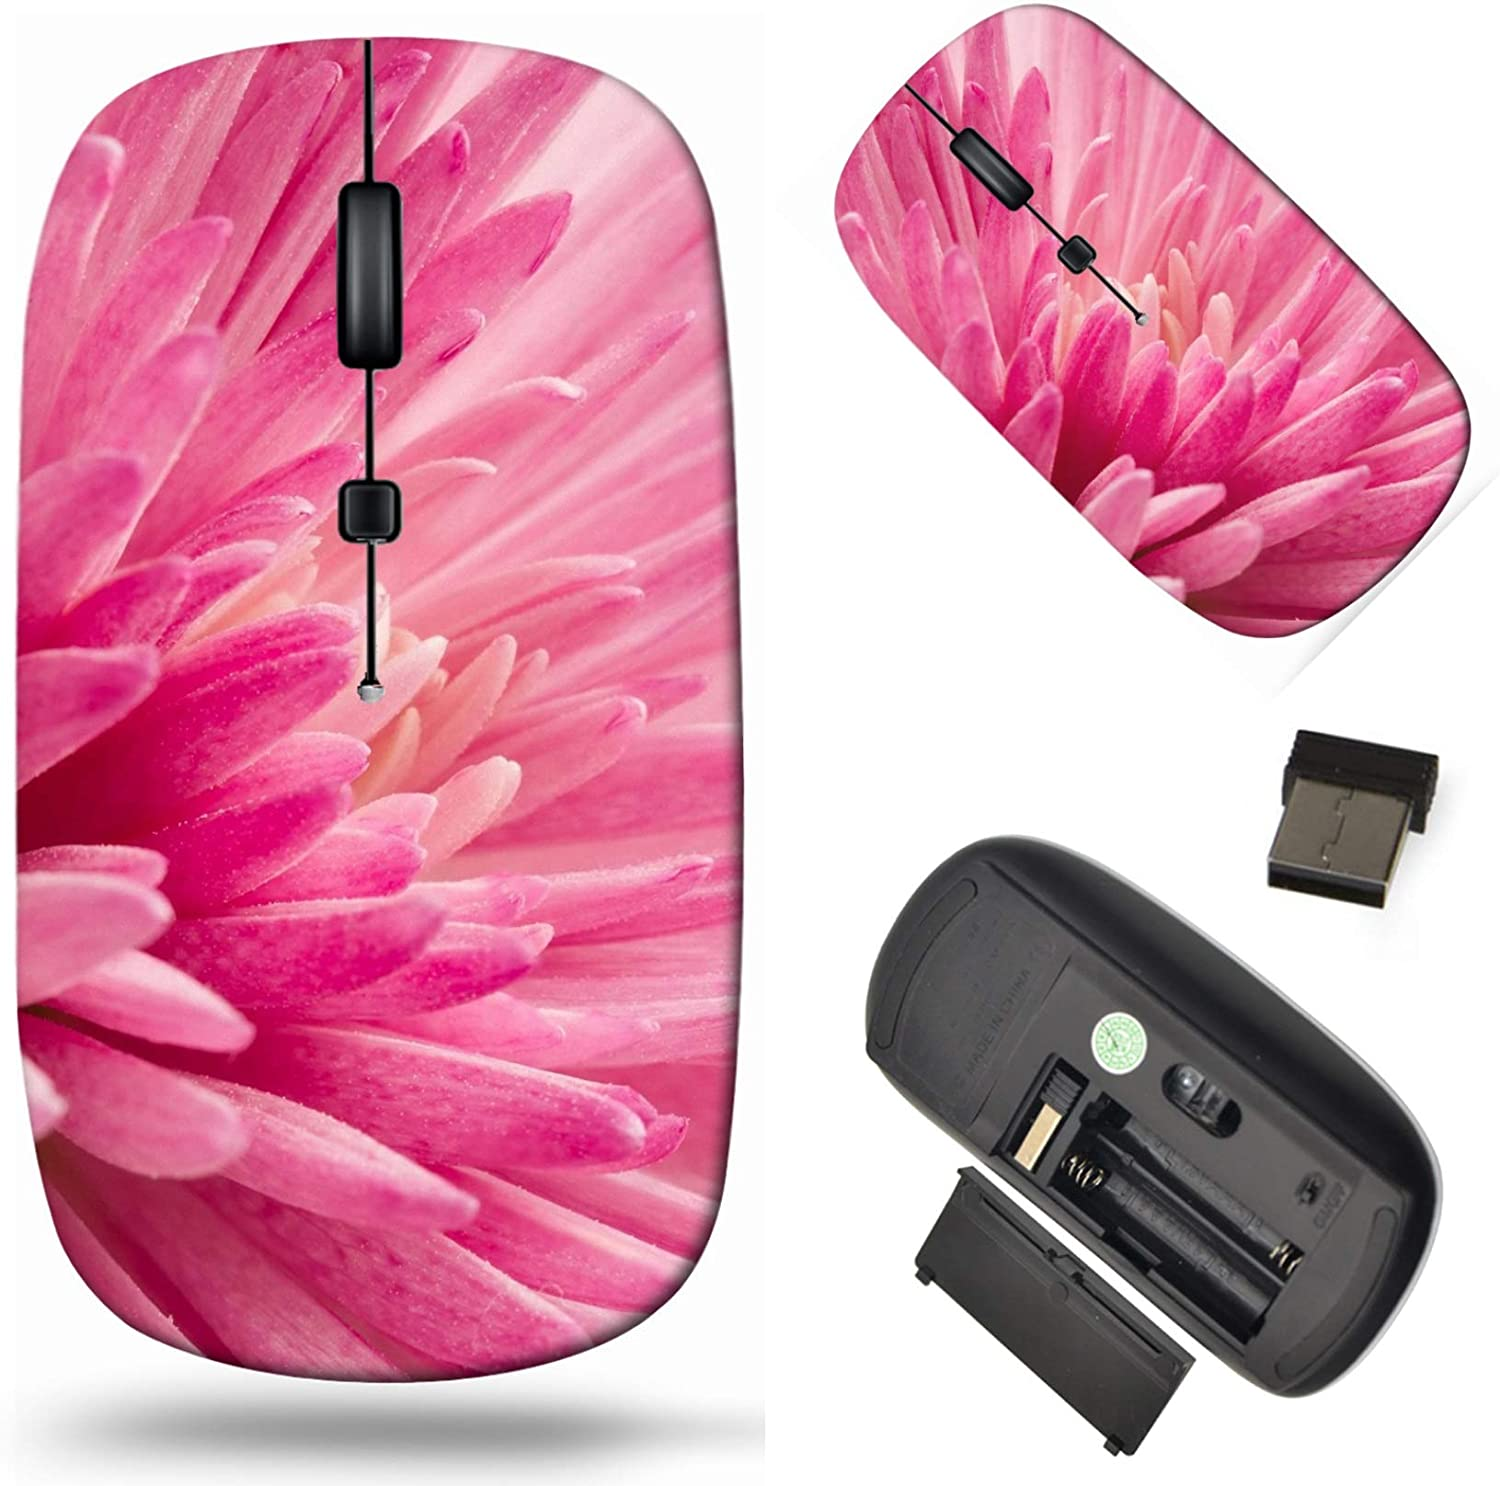 Wireless Computer Mouse 2.4G with Max 41% OFF Receiver USB New mail order Cor Laptop